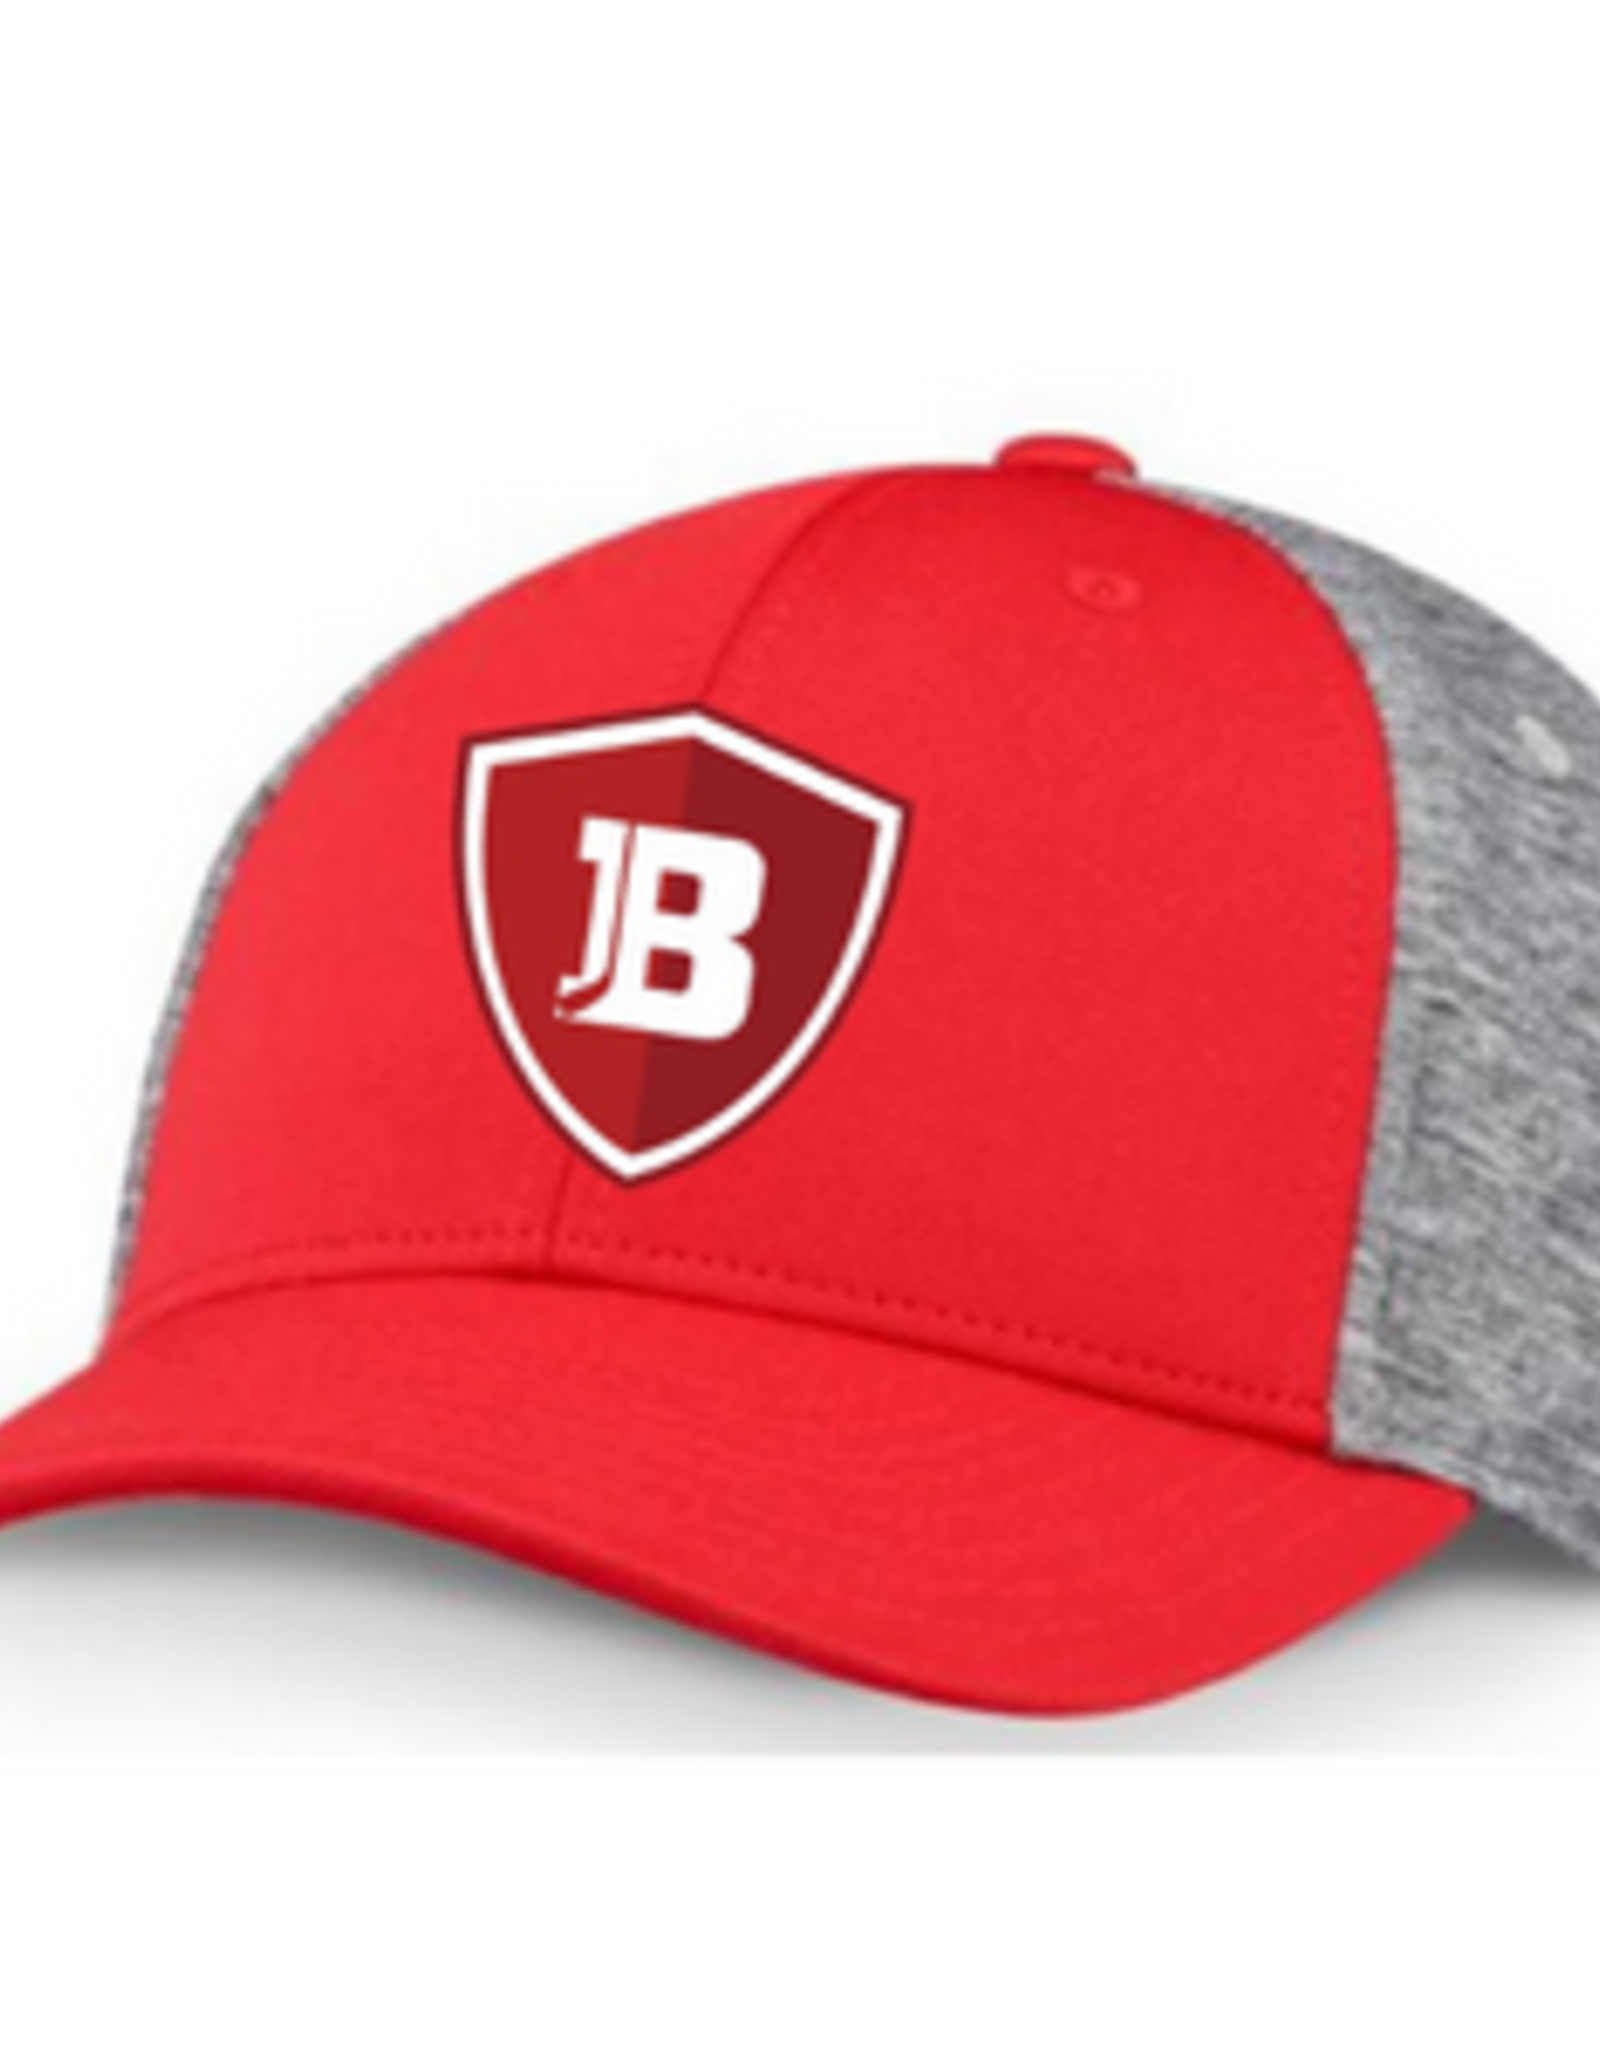 CCM Bradley CCM Red/Grey Fitted Hat (ADULT) S/M